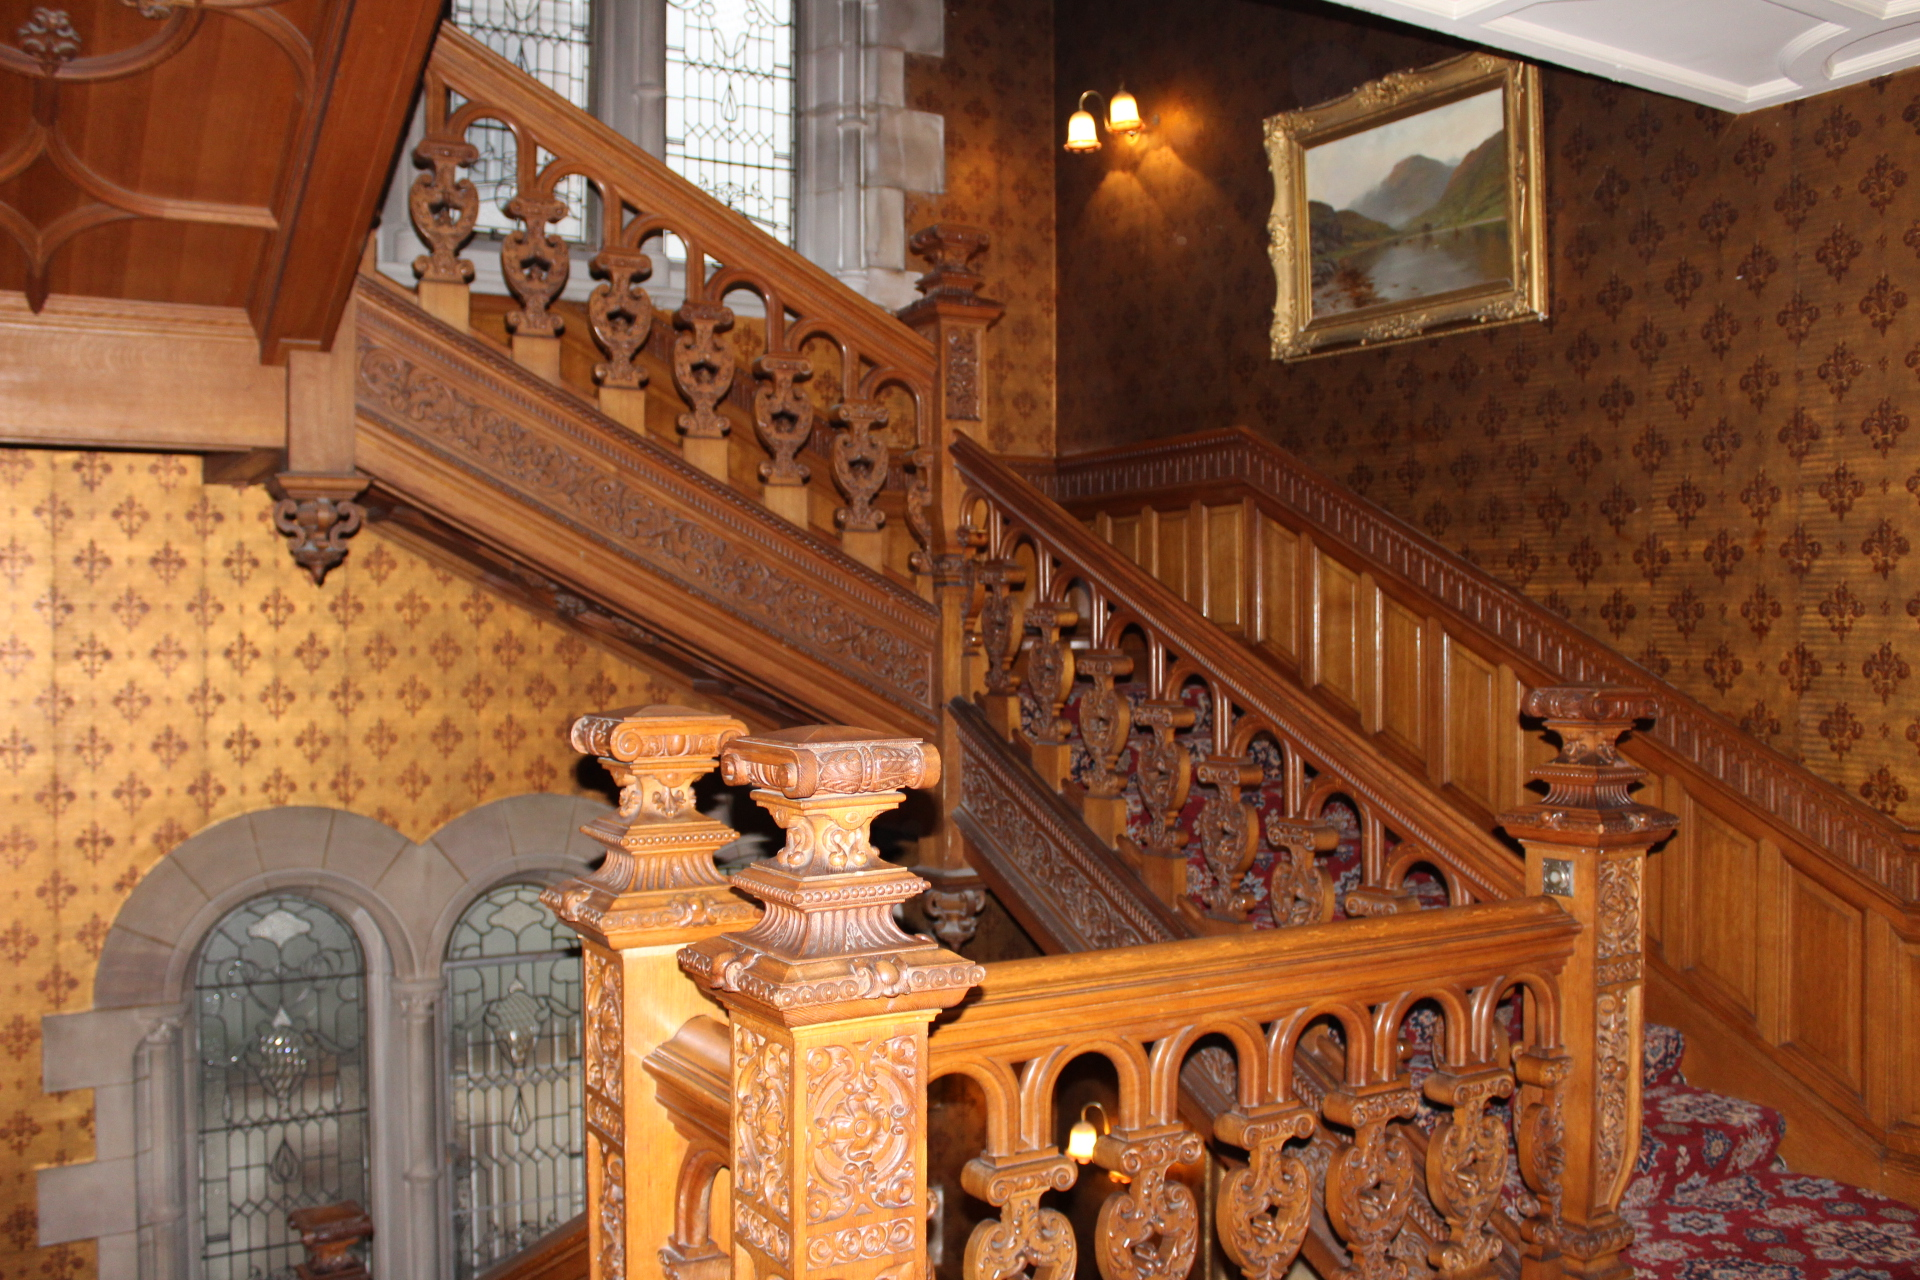 A stairwell to the bedrooms